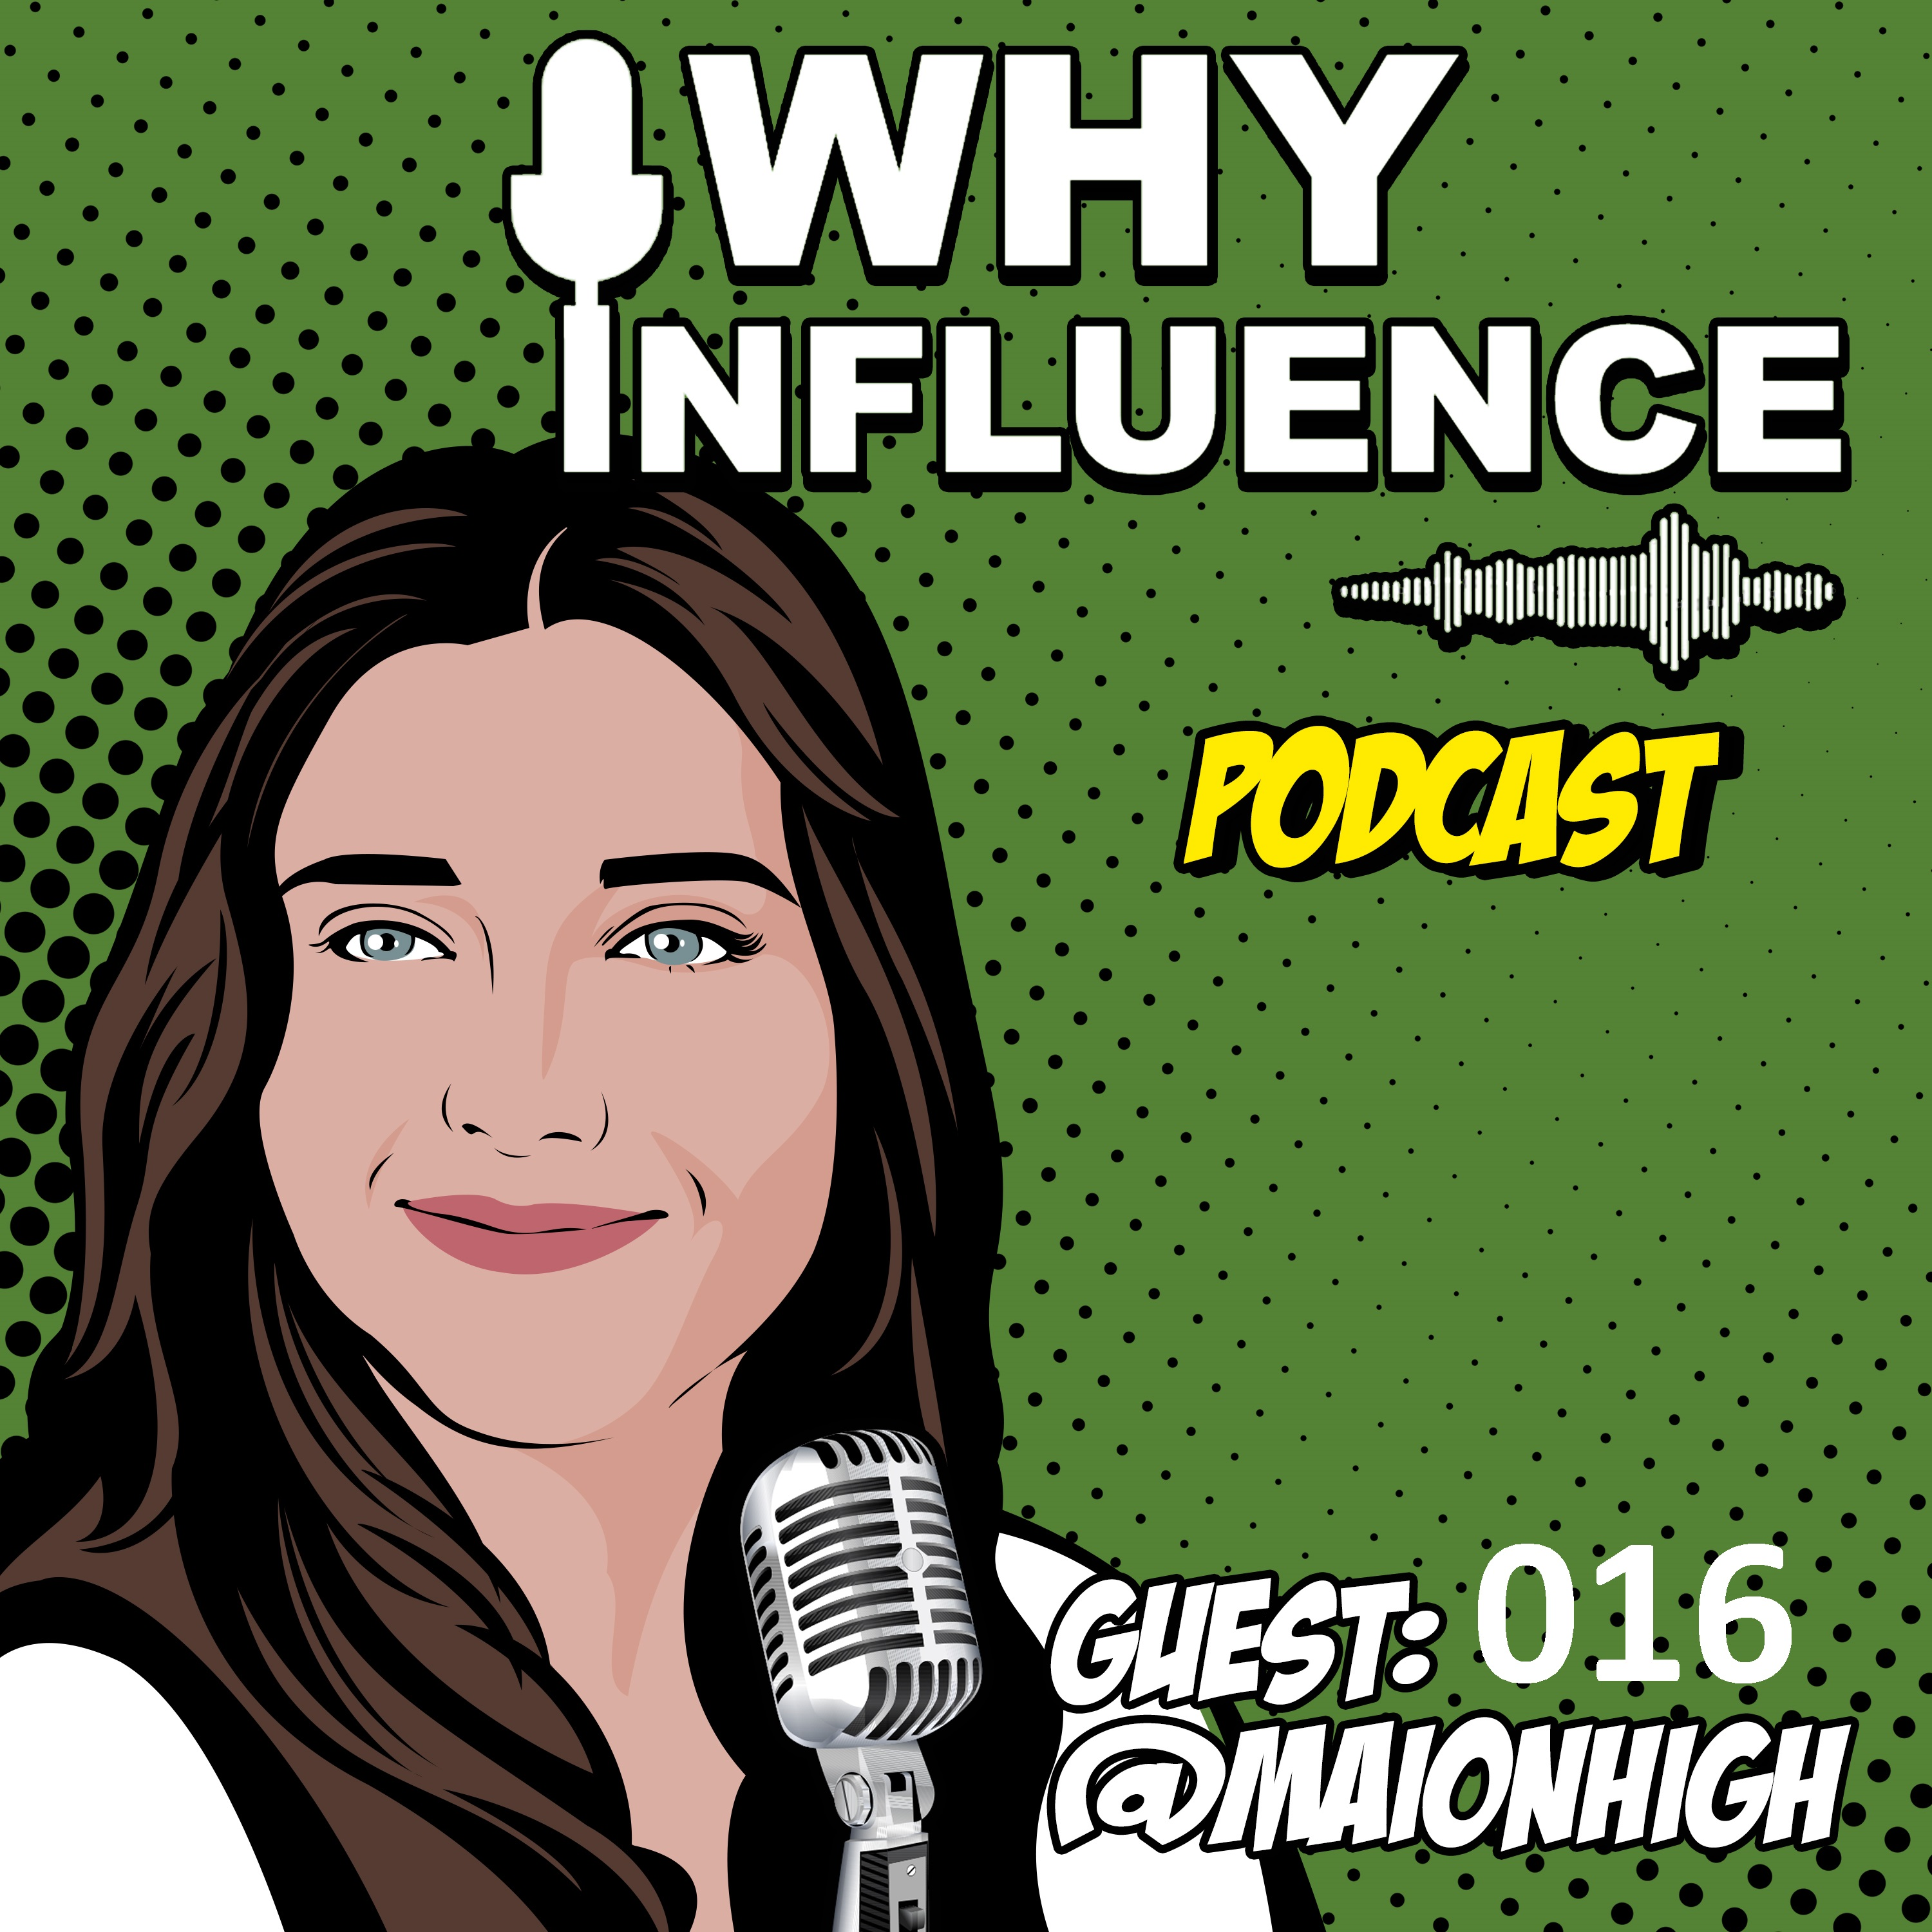 Lexie Janson Shares Why YouTube Can Make You More Positive and Empower Your Dreams. Maionhigh   016